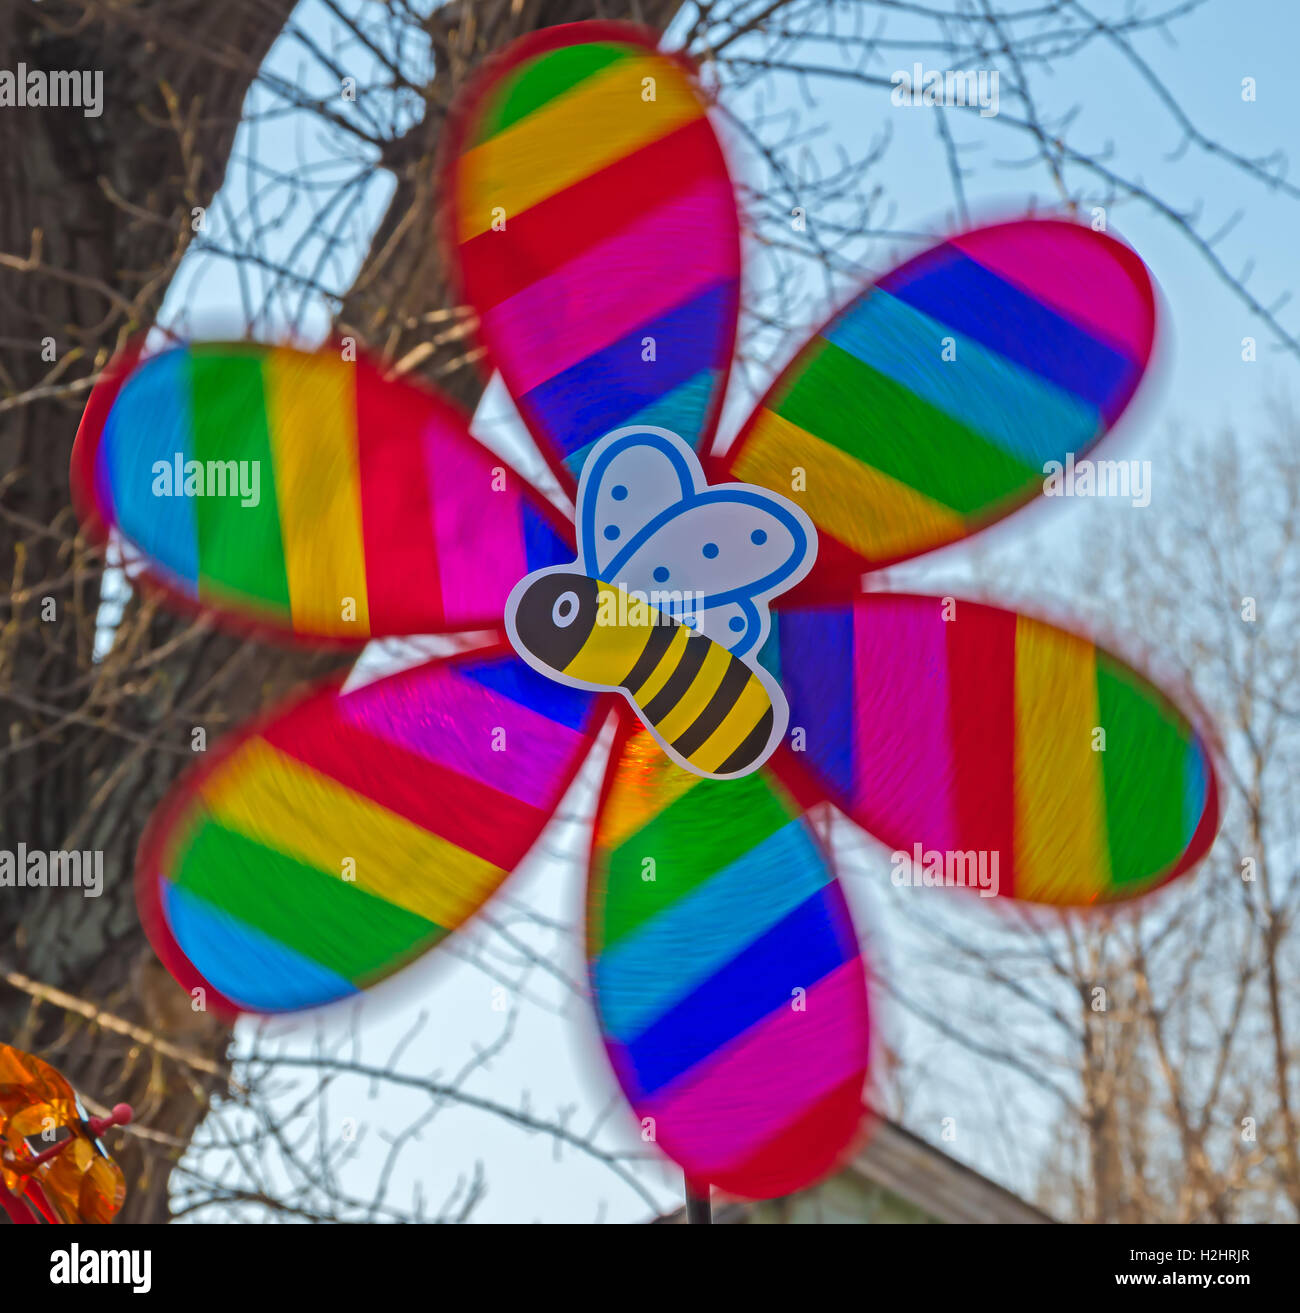 Children's multi-colored toy in the form of a propeller and bee in motion - Stock Image